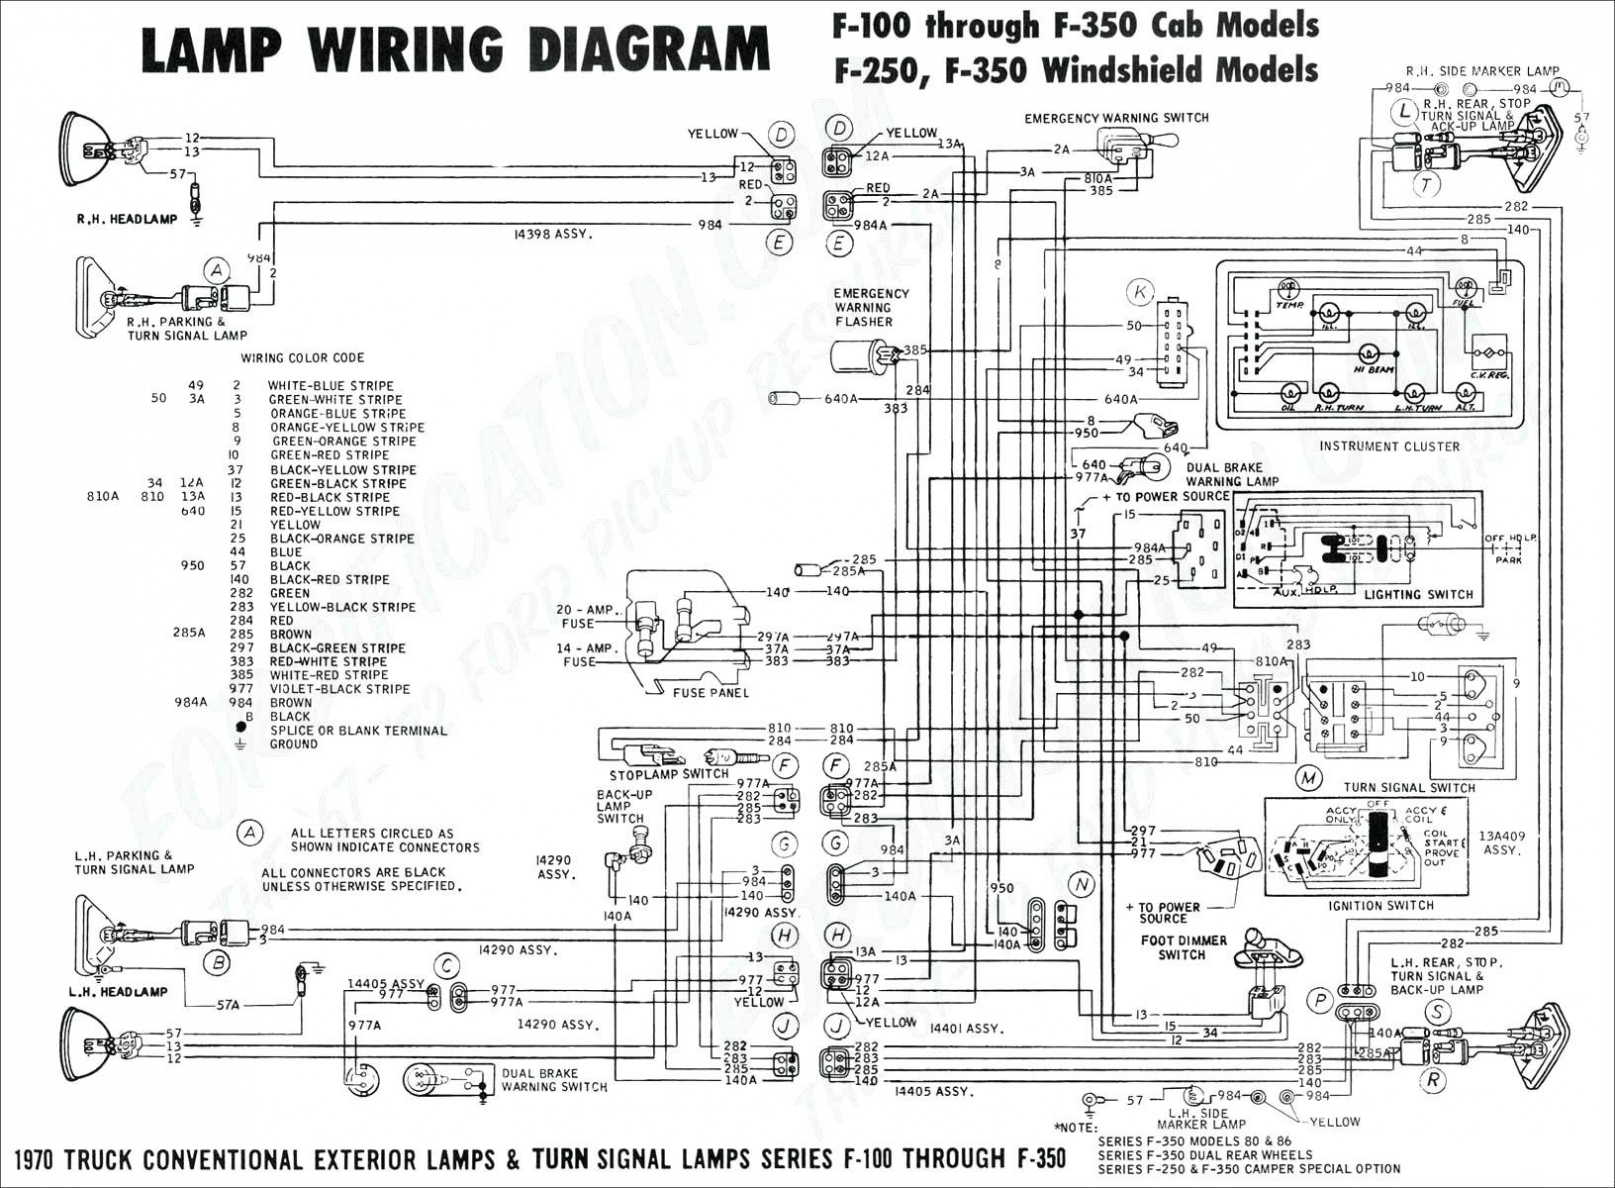 Silverado Fuse Diagram | Wiring Diagram